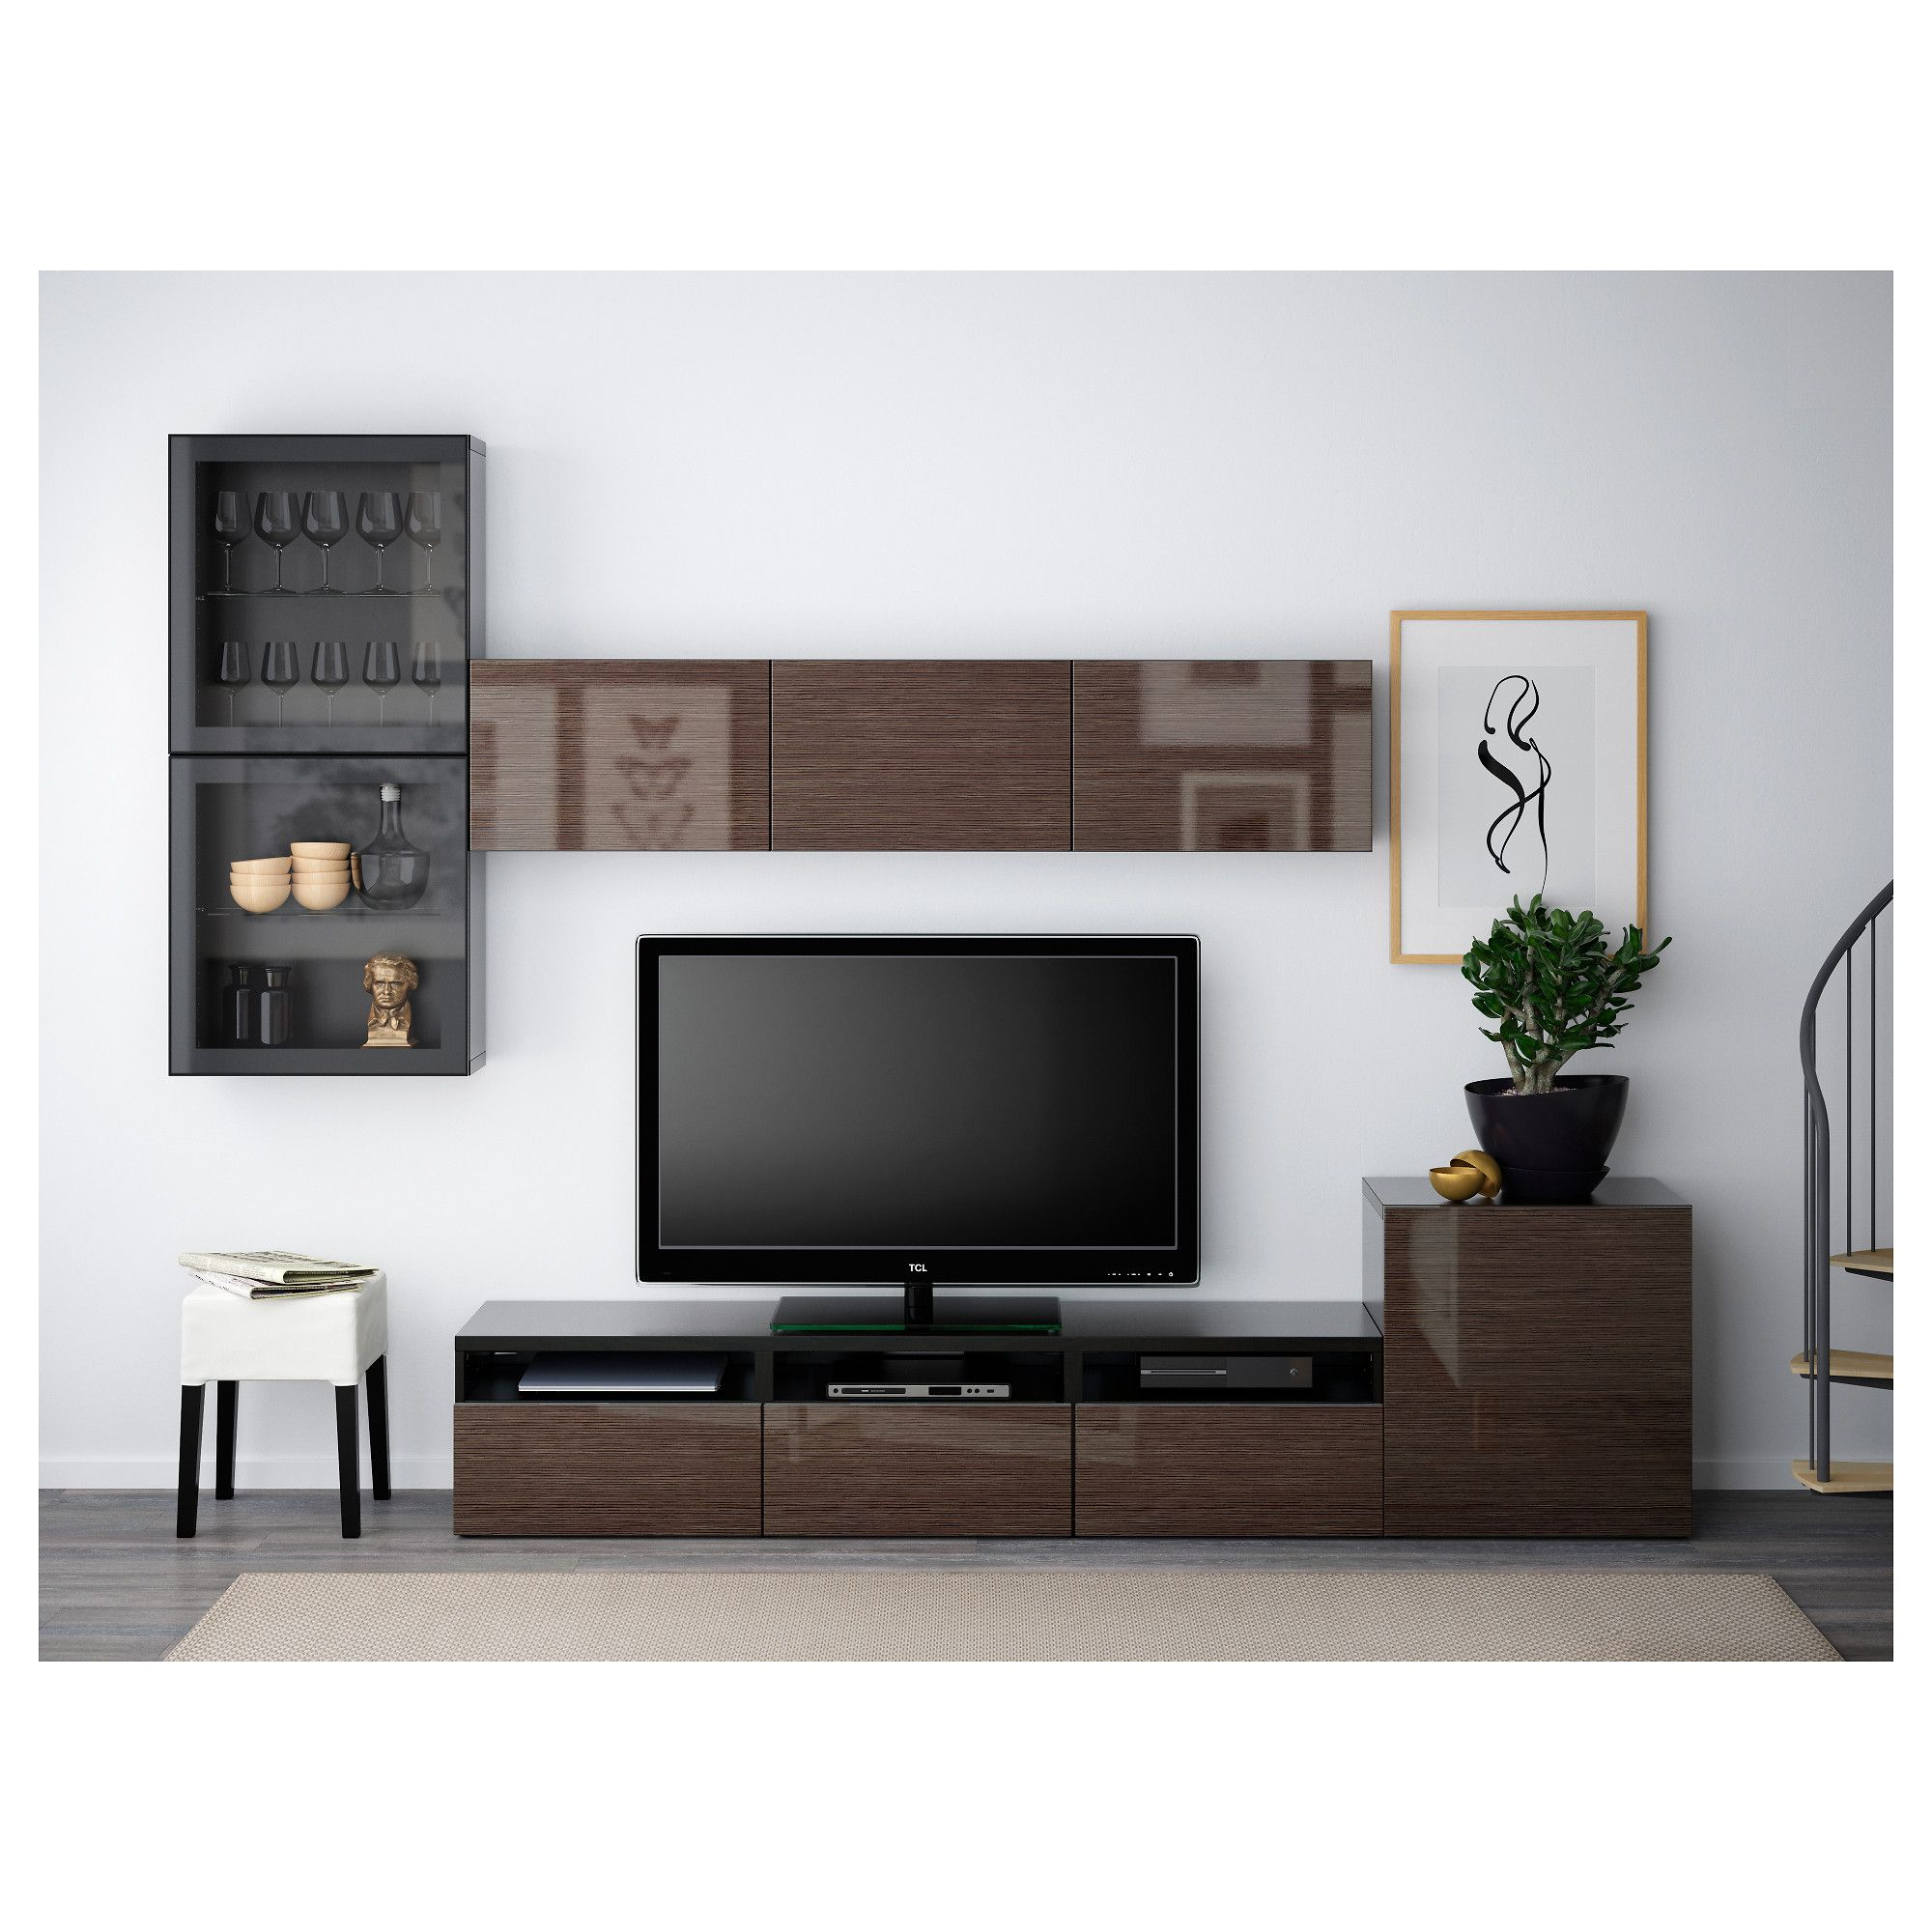 Furniture Home Furnishings Find Your Inspiration Living Room Entertainment Ikea Living Room Living Room Tv Wall